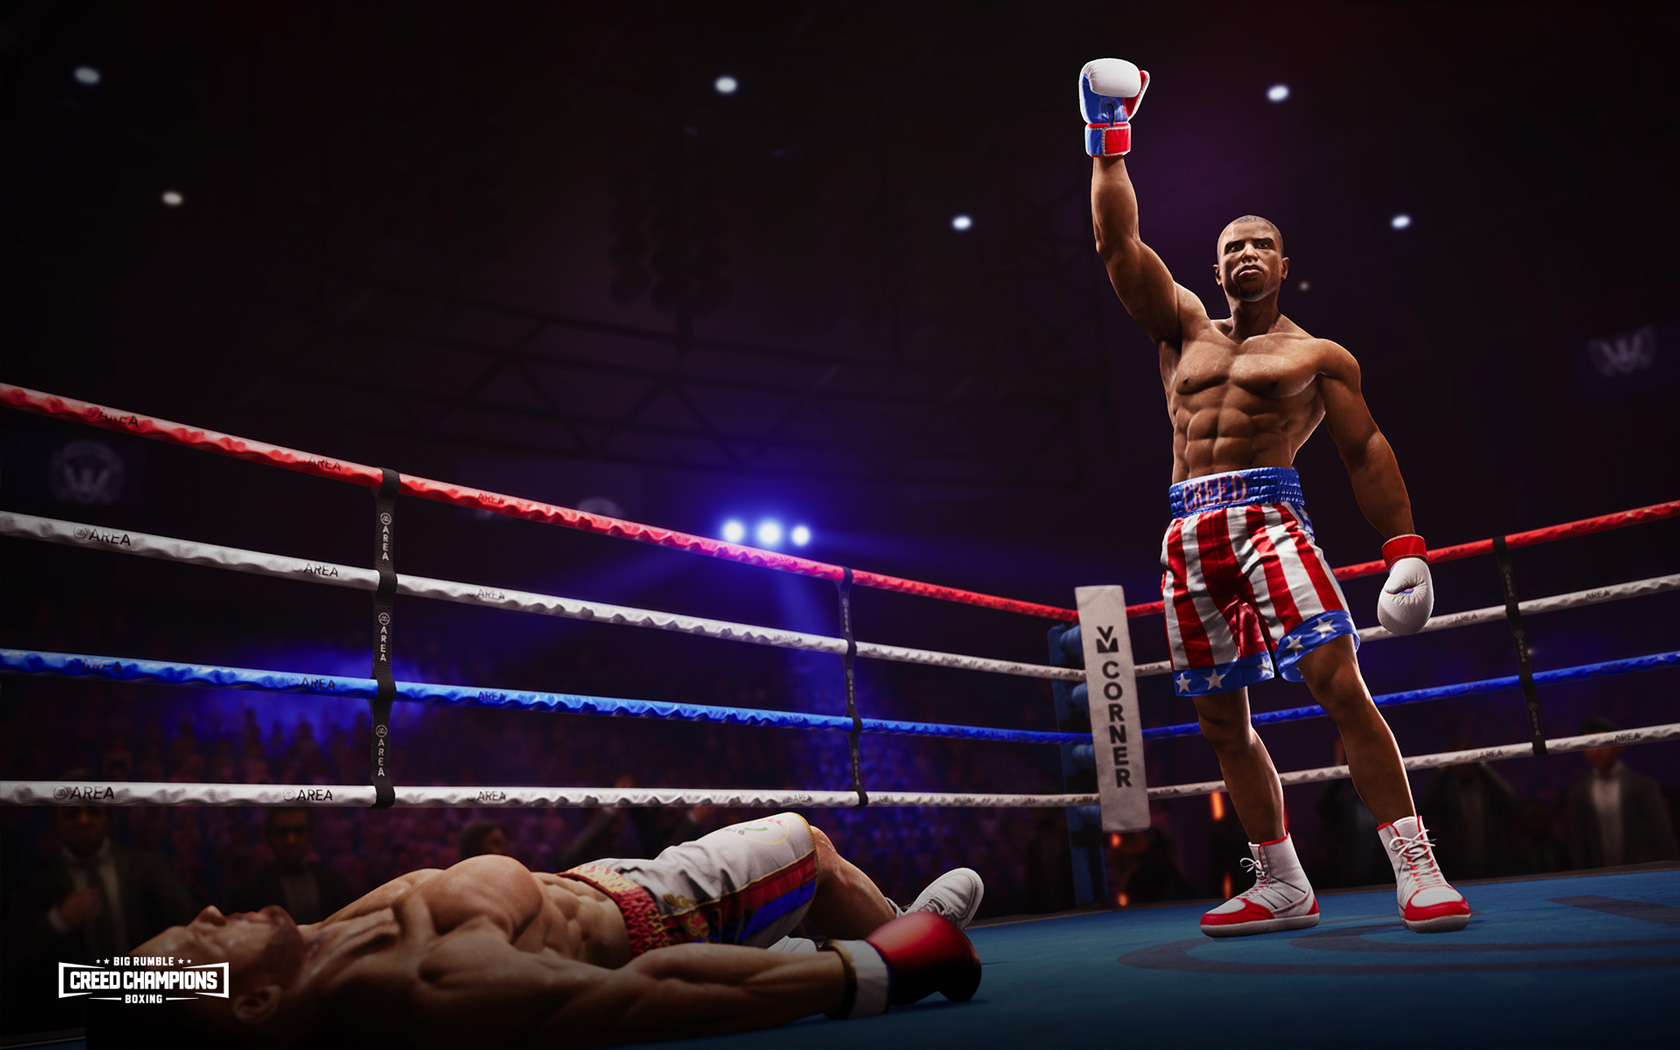 Free Big Rumble Boxing: Creed Champions Wallpaper in 1680x1050